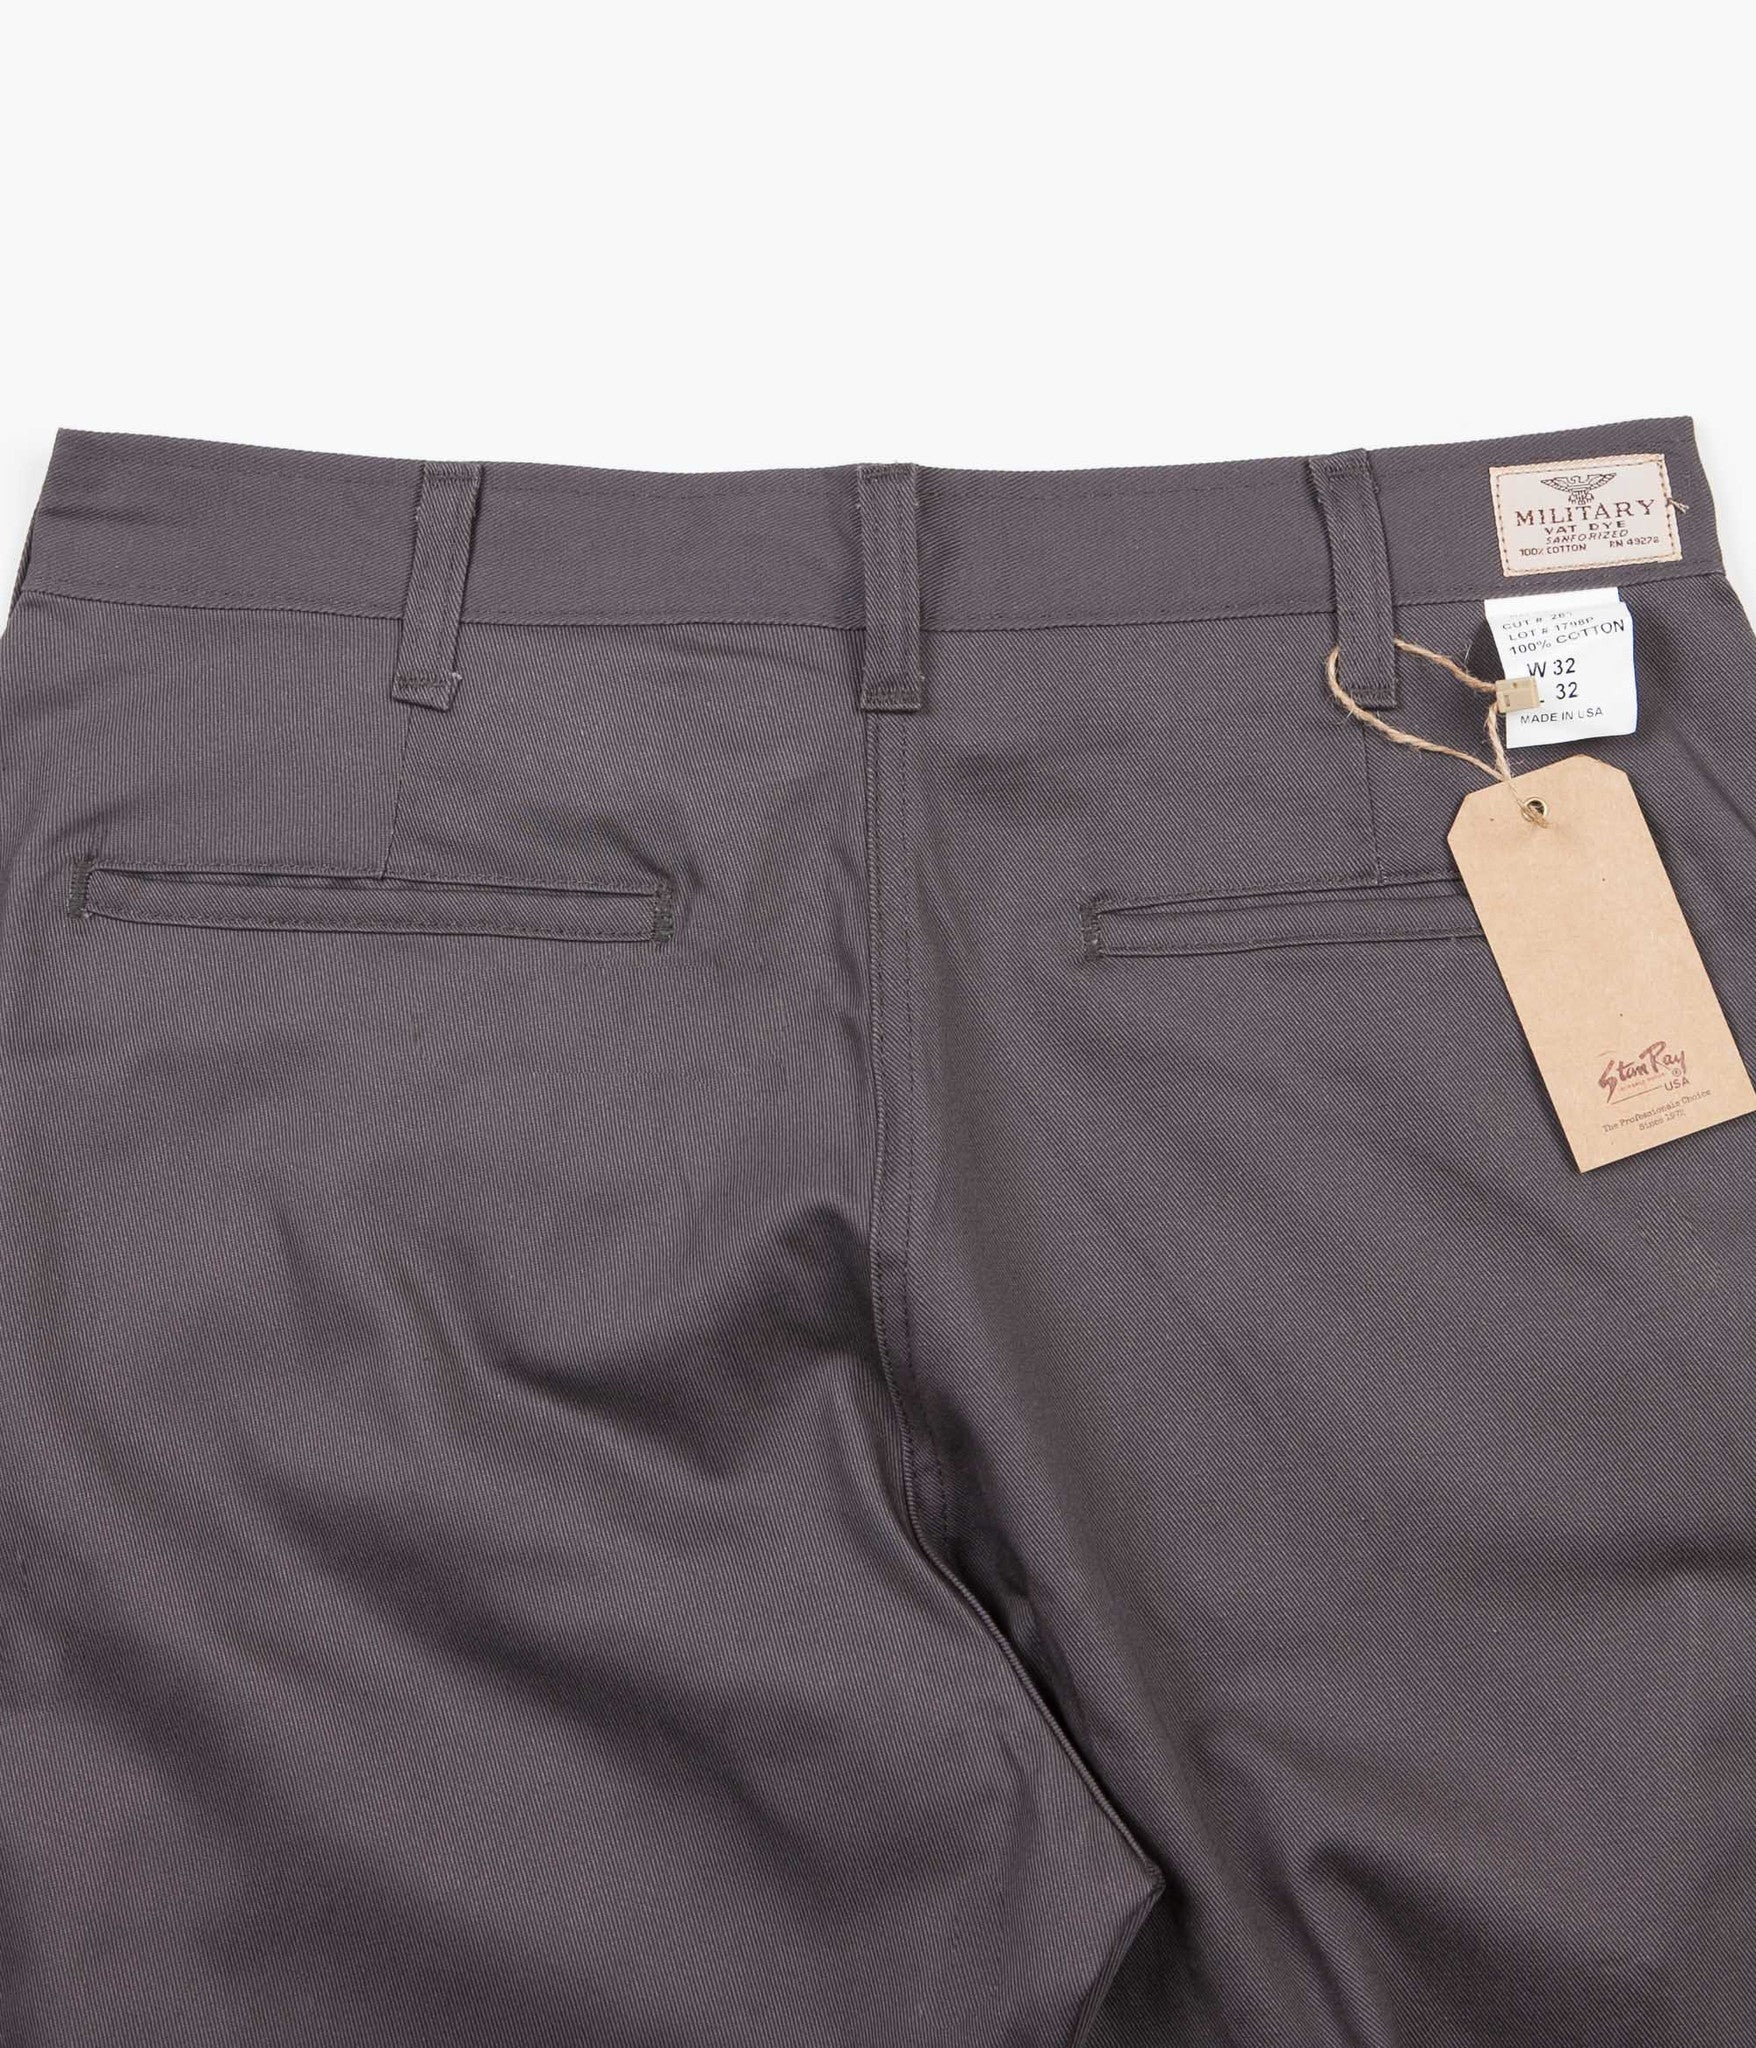 Stan Ray Military Chino Trousers - Charcoal Twill